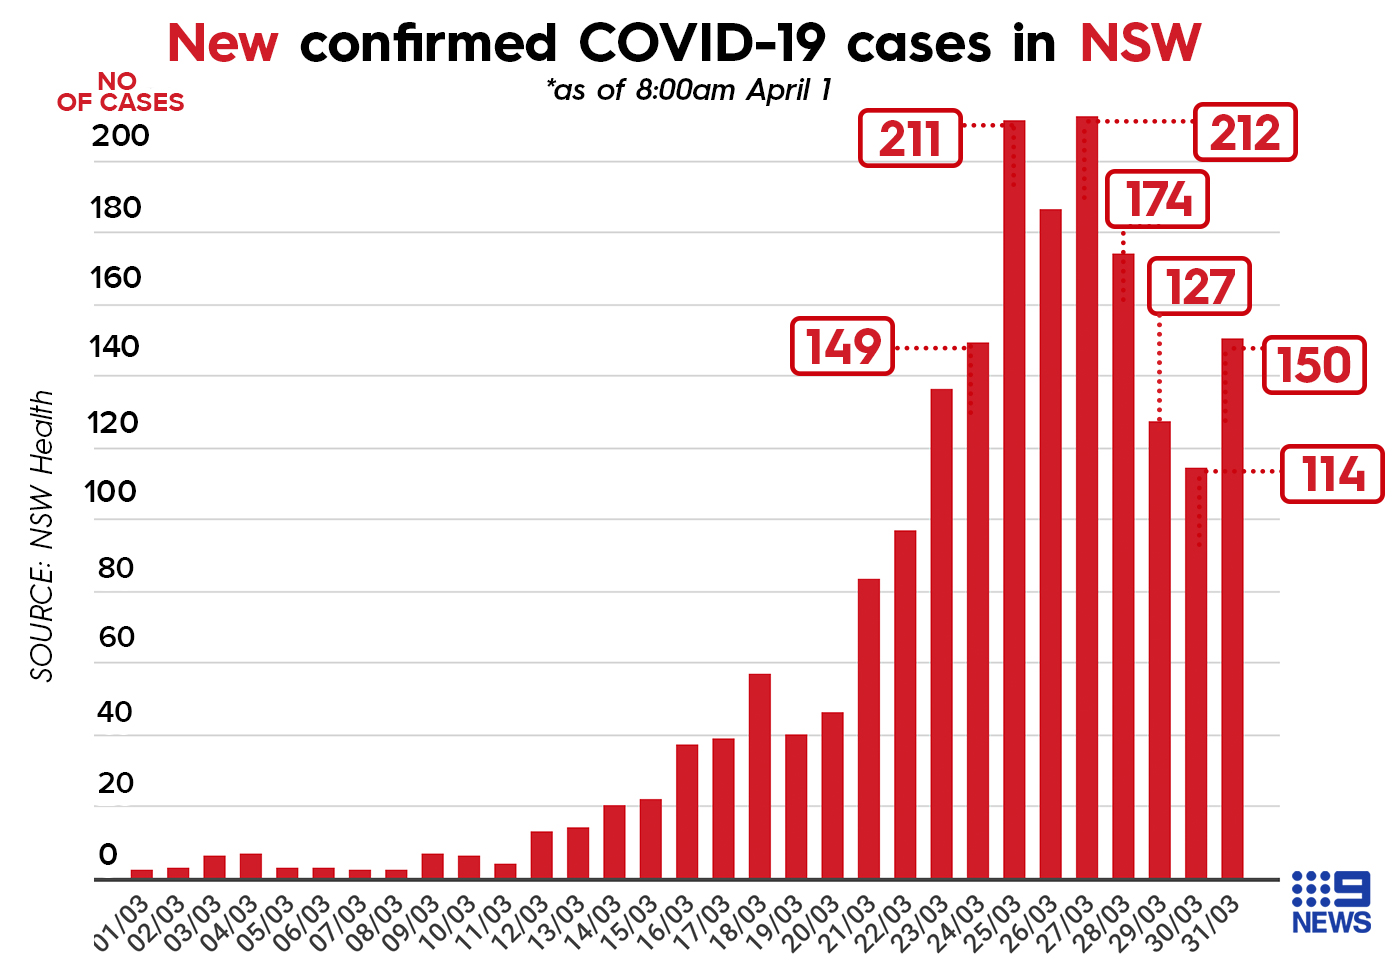 Graph showing confirmed COVID-19 cases in NSW.